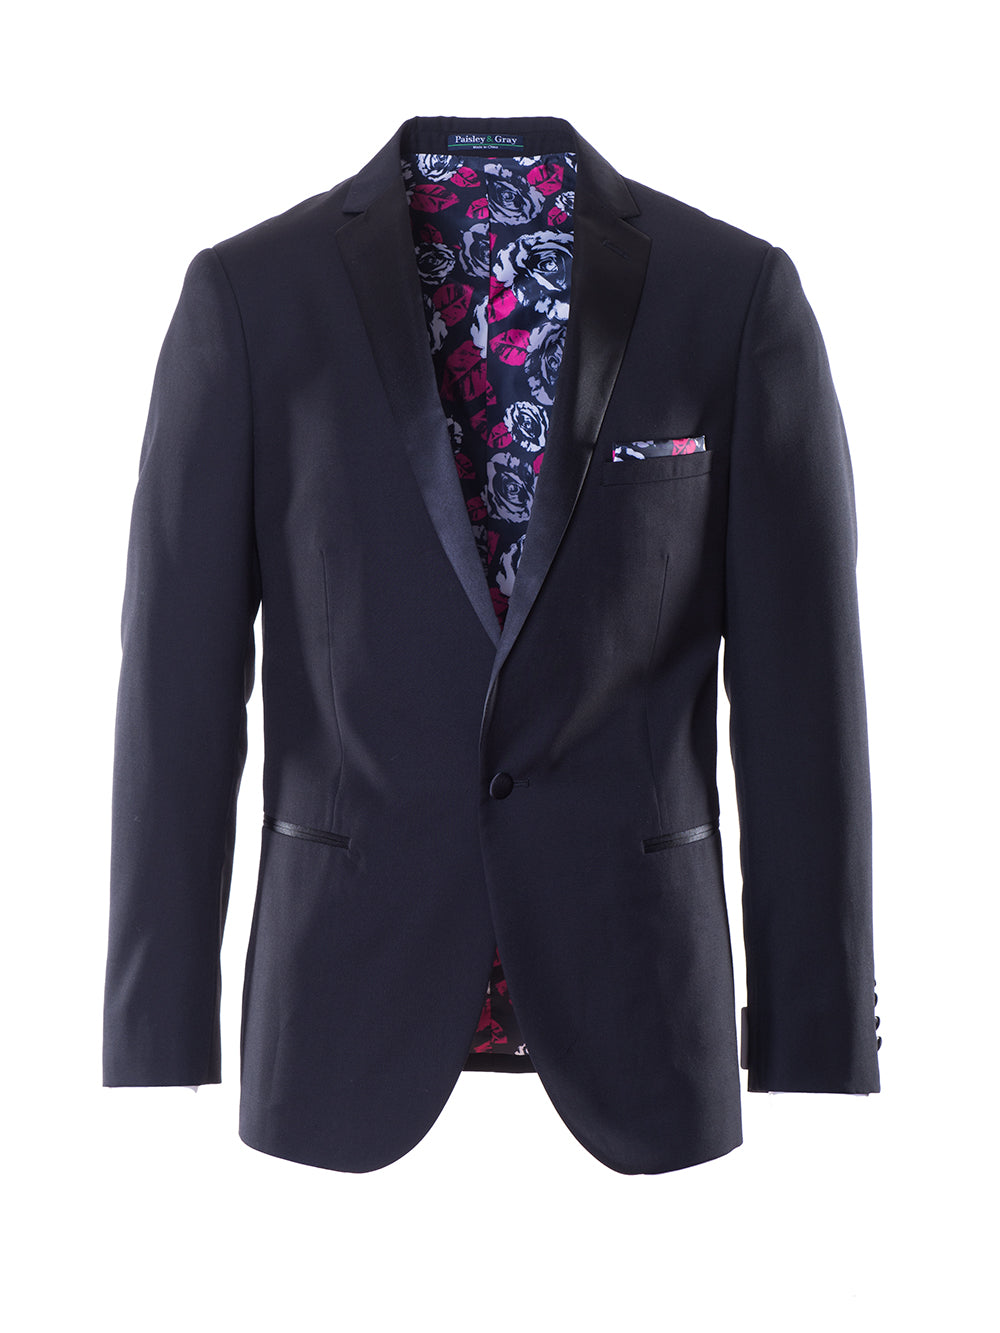 Osborne Notch Dinner Jacket - Black